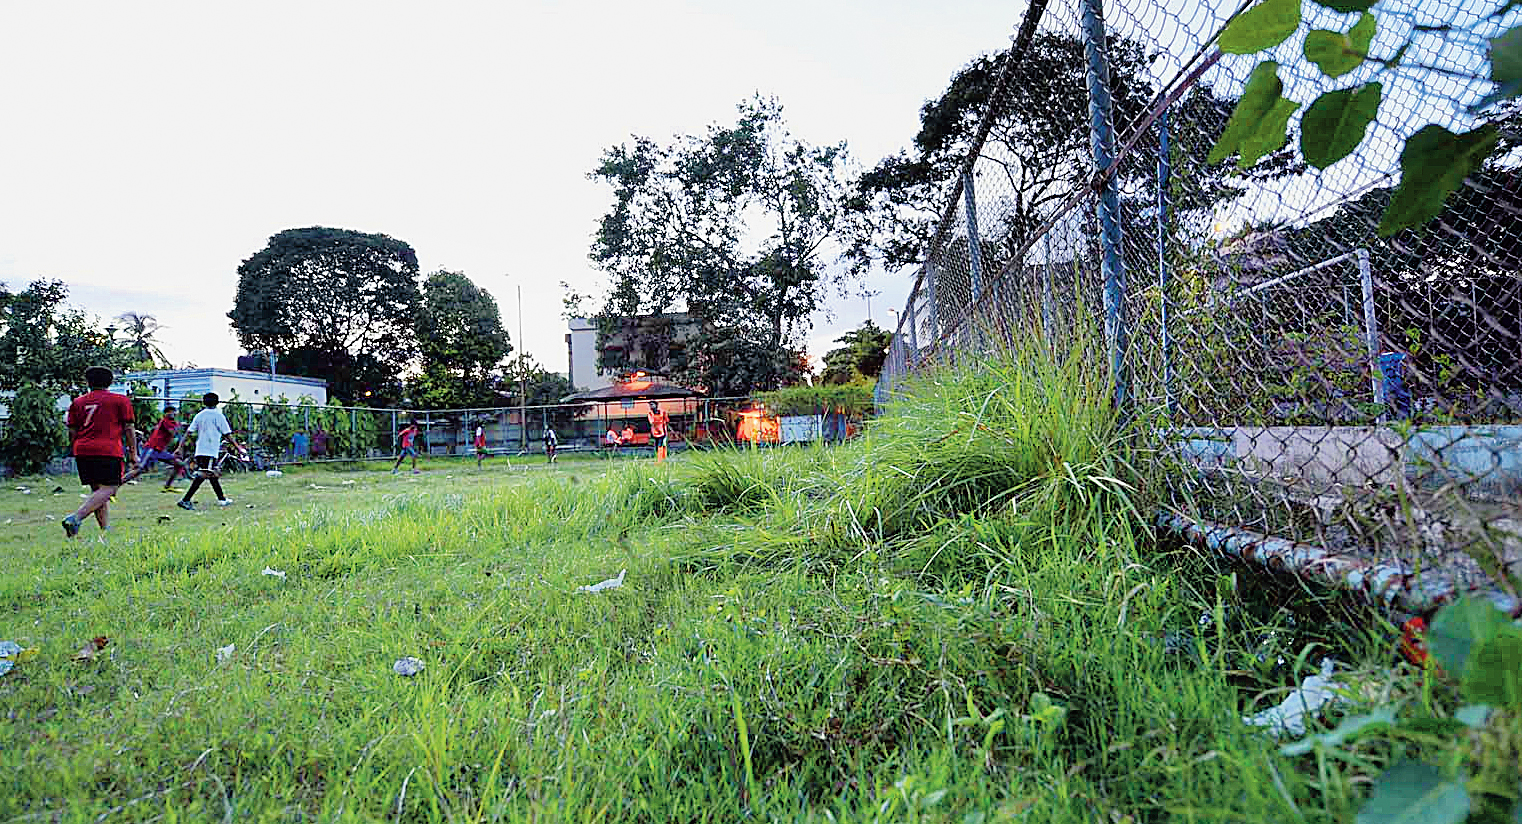 AB Block: Children play football amidst tall grass and weed at AB Park in Salt Lake's Sector I. Residents said the Bidhannagar Municipal Corporation had not cleaned the park in months